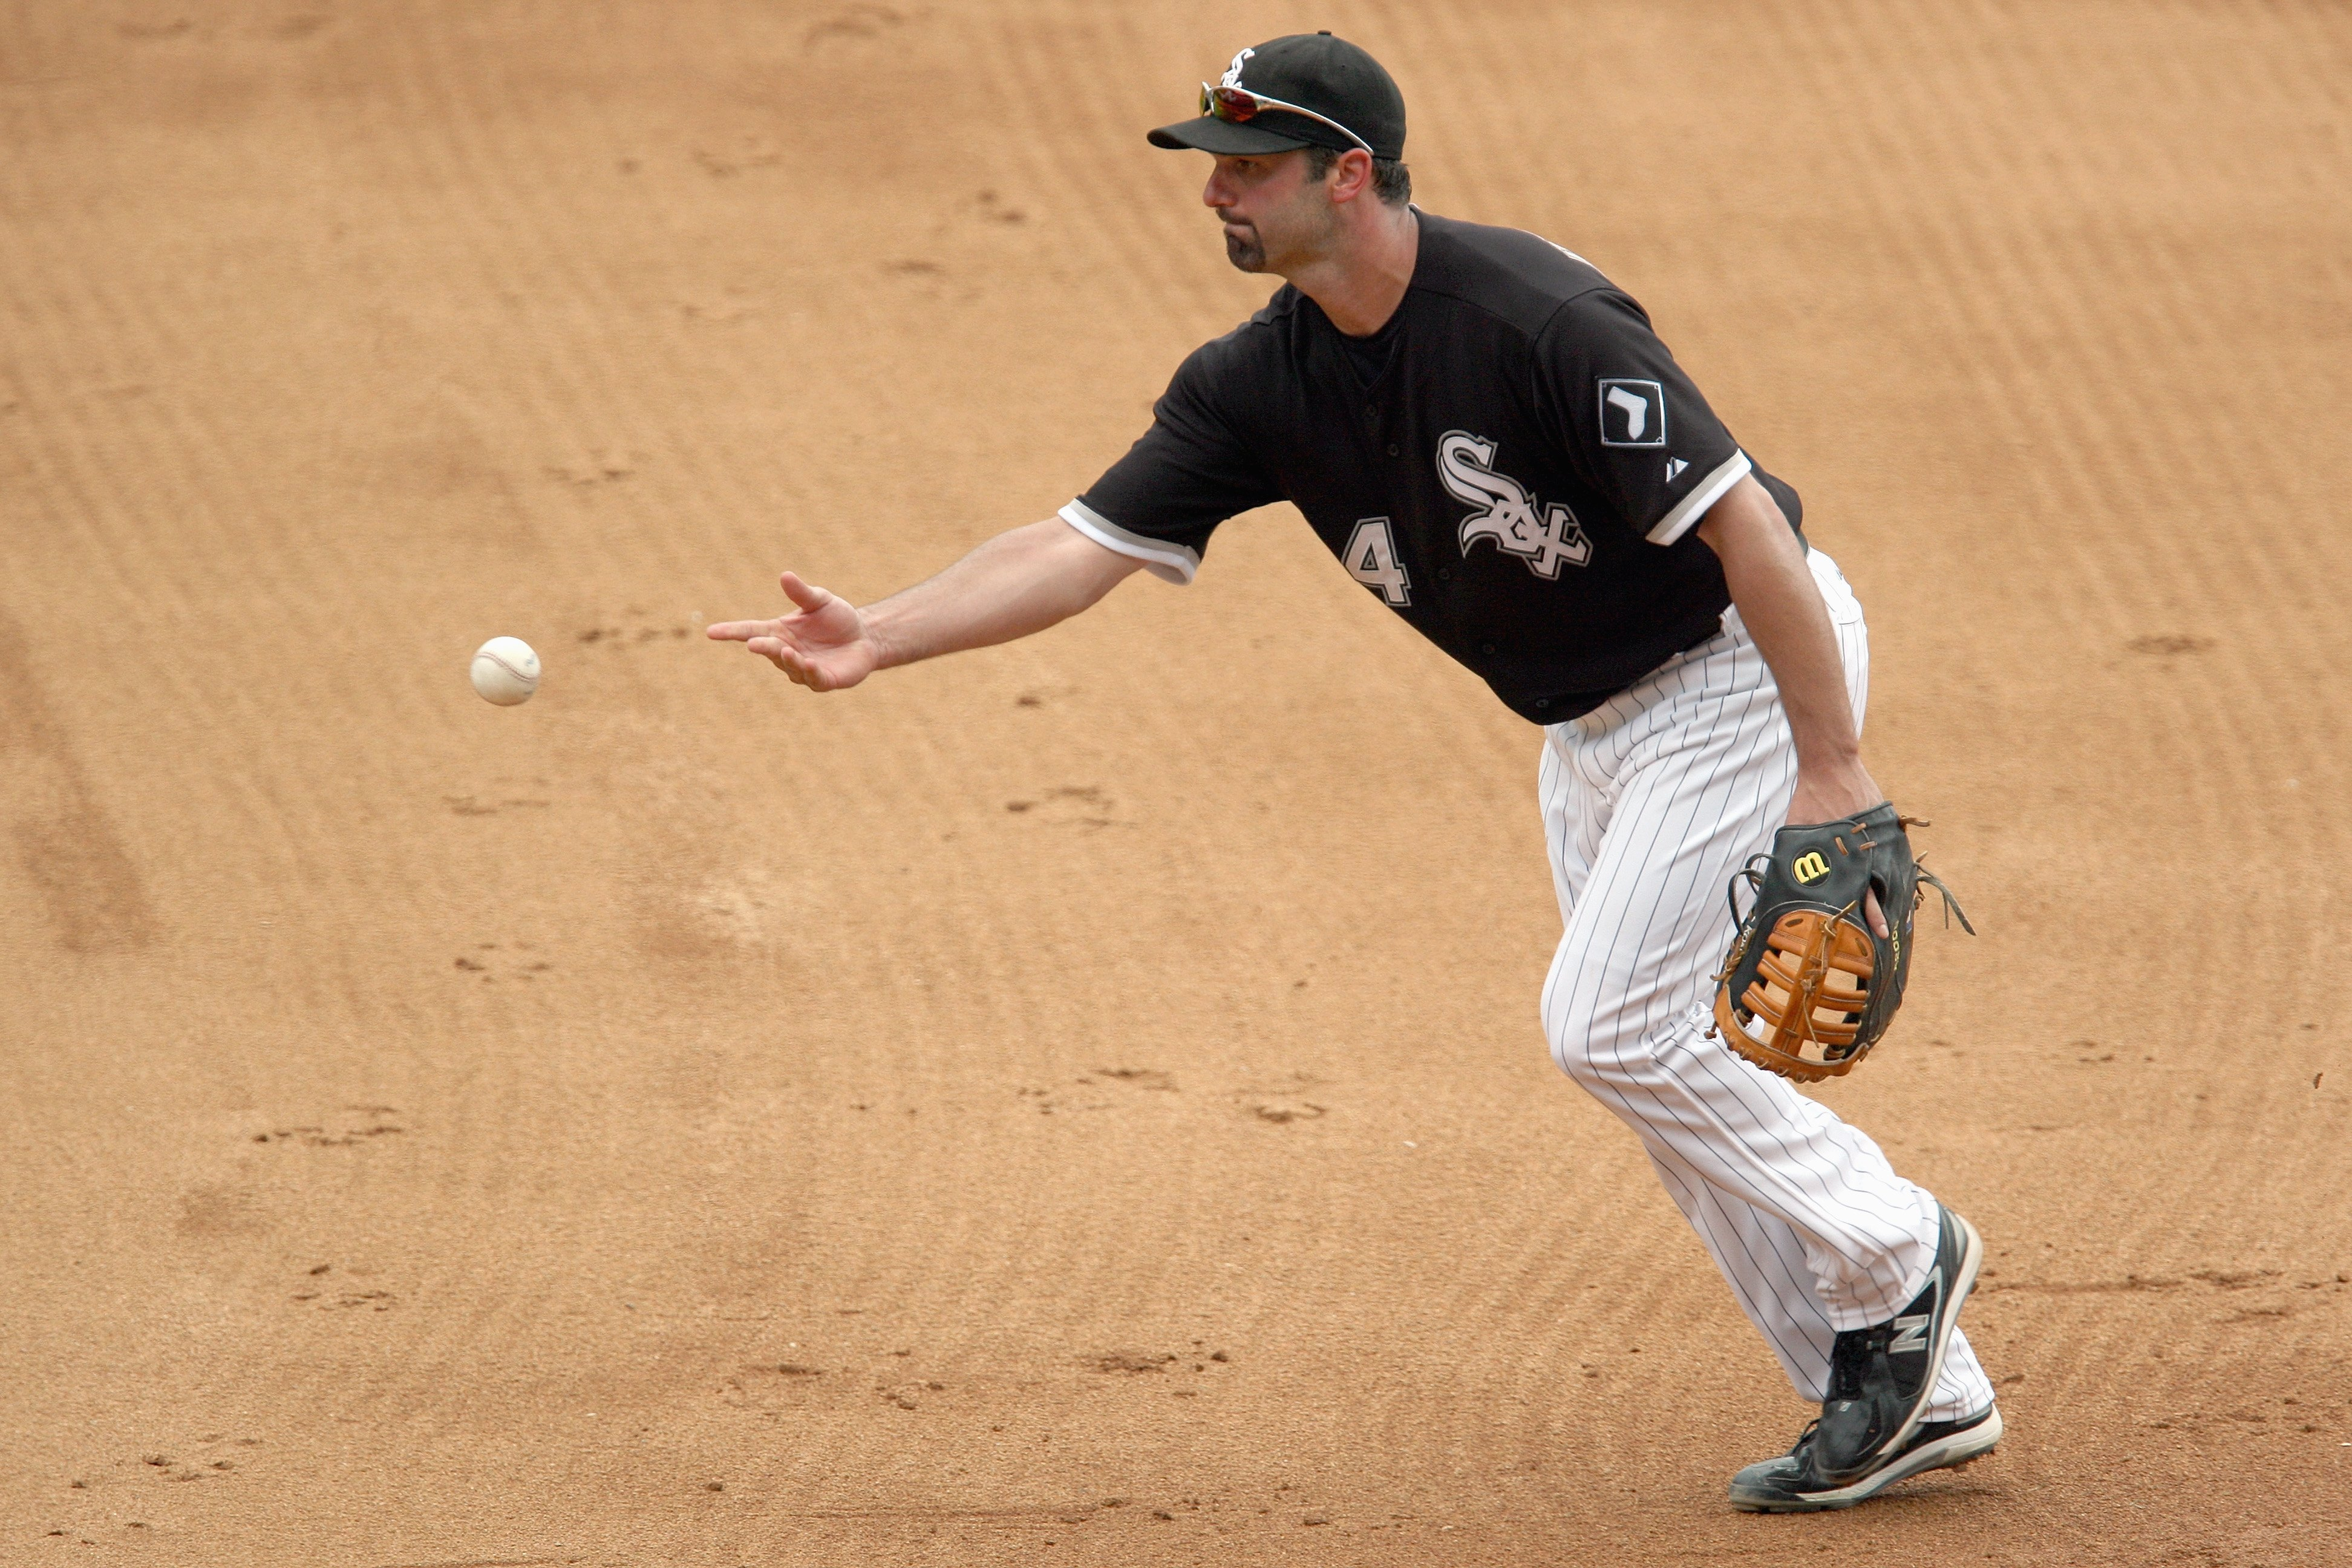 CHICAGO - AUGUST 23:  Paul Konerko #14 of the Chicago White Sox tosses the ball during the game against the Tampa Bay Rays on August 23, 2008 at U.S. Cellular Field in Chicago, Illinois. (Photo by Jonathan Daniel/Getty Images)